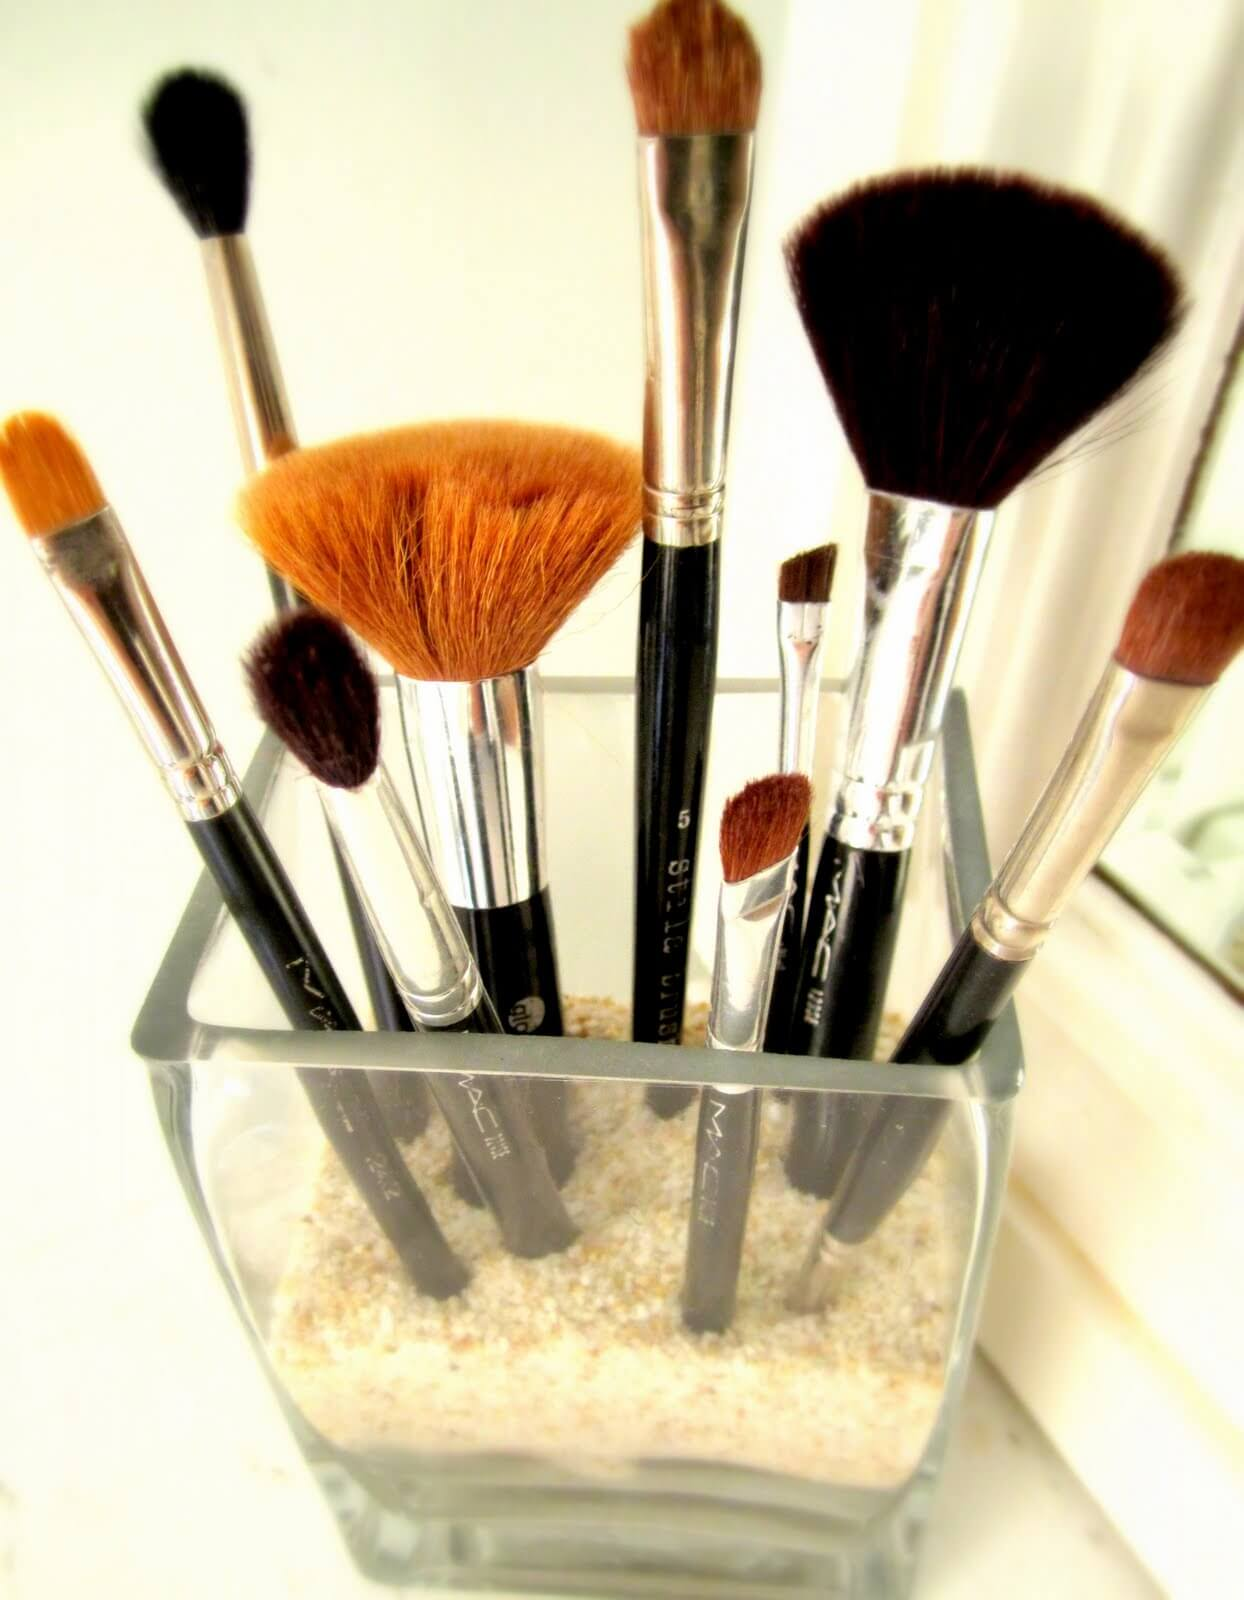 A Pretty Way to Display Makeup Brushes